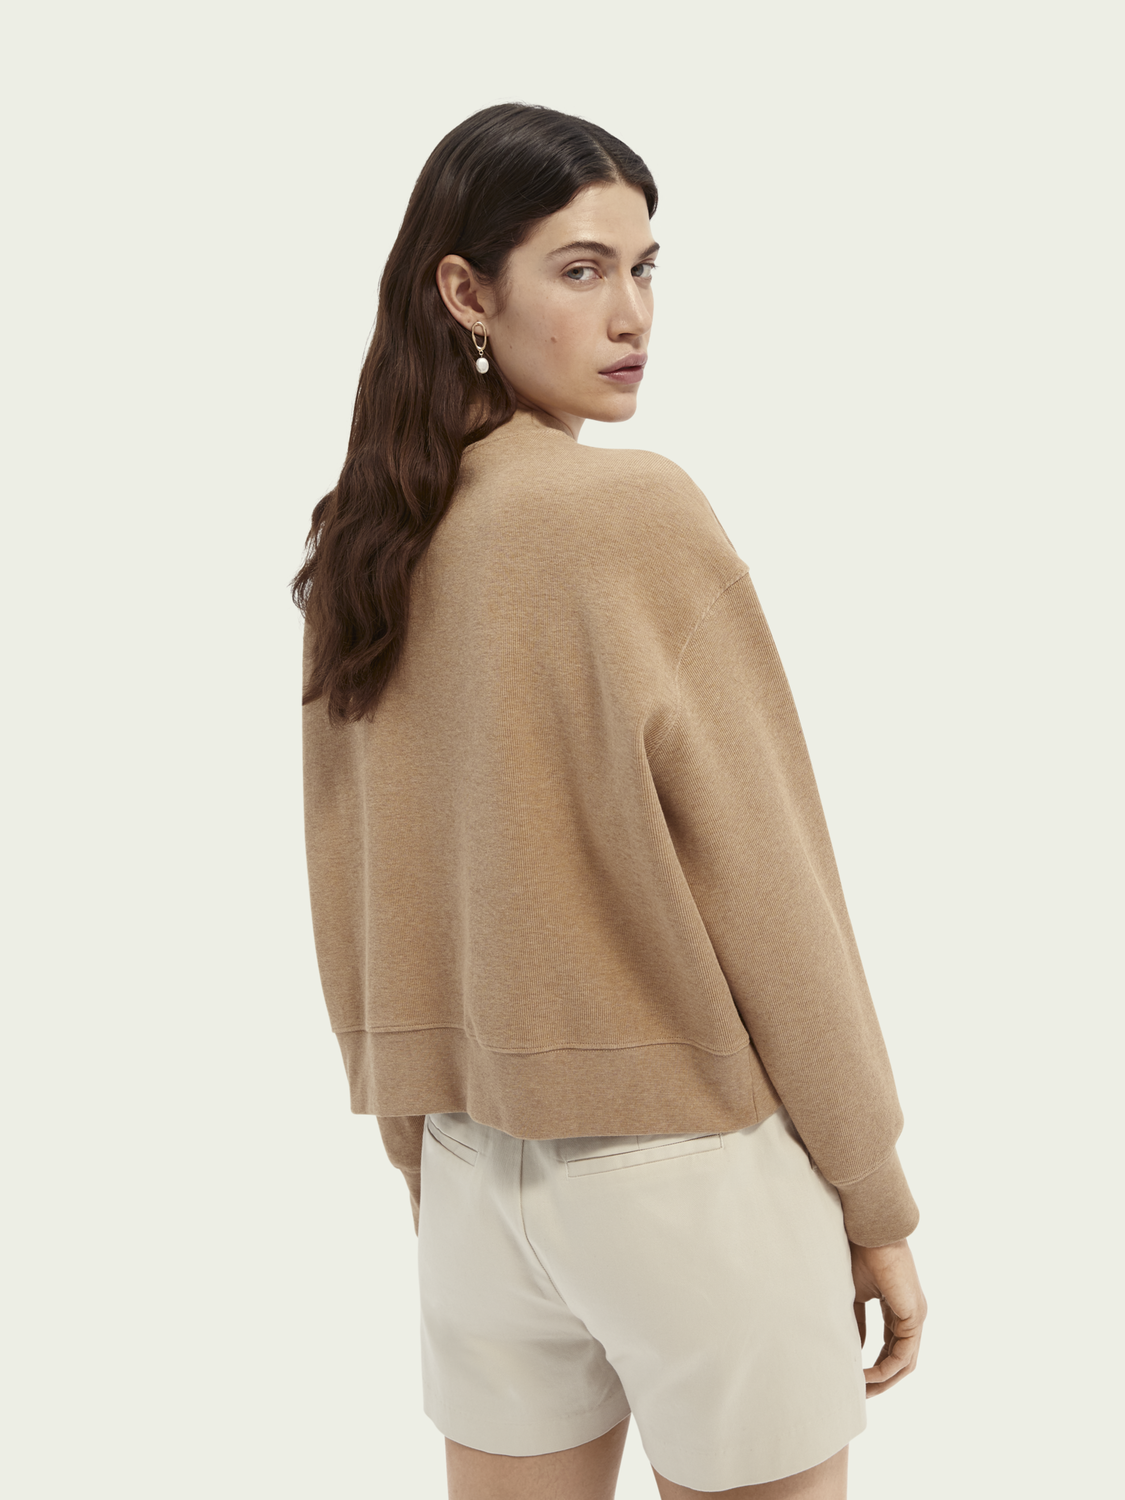 Women Relaxed fit high neck graphic sweater